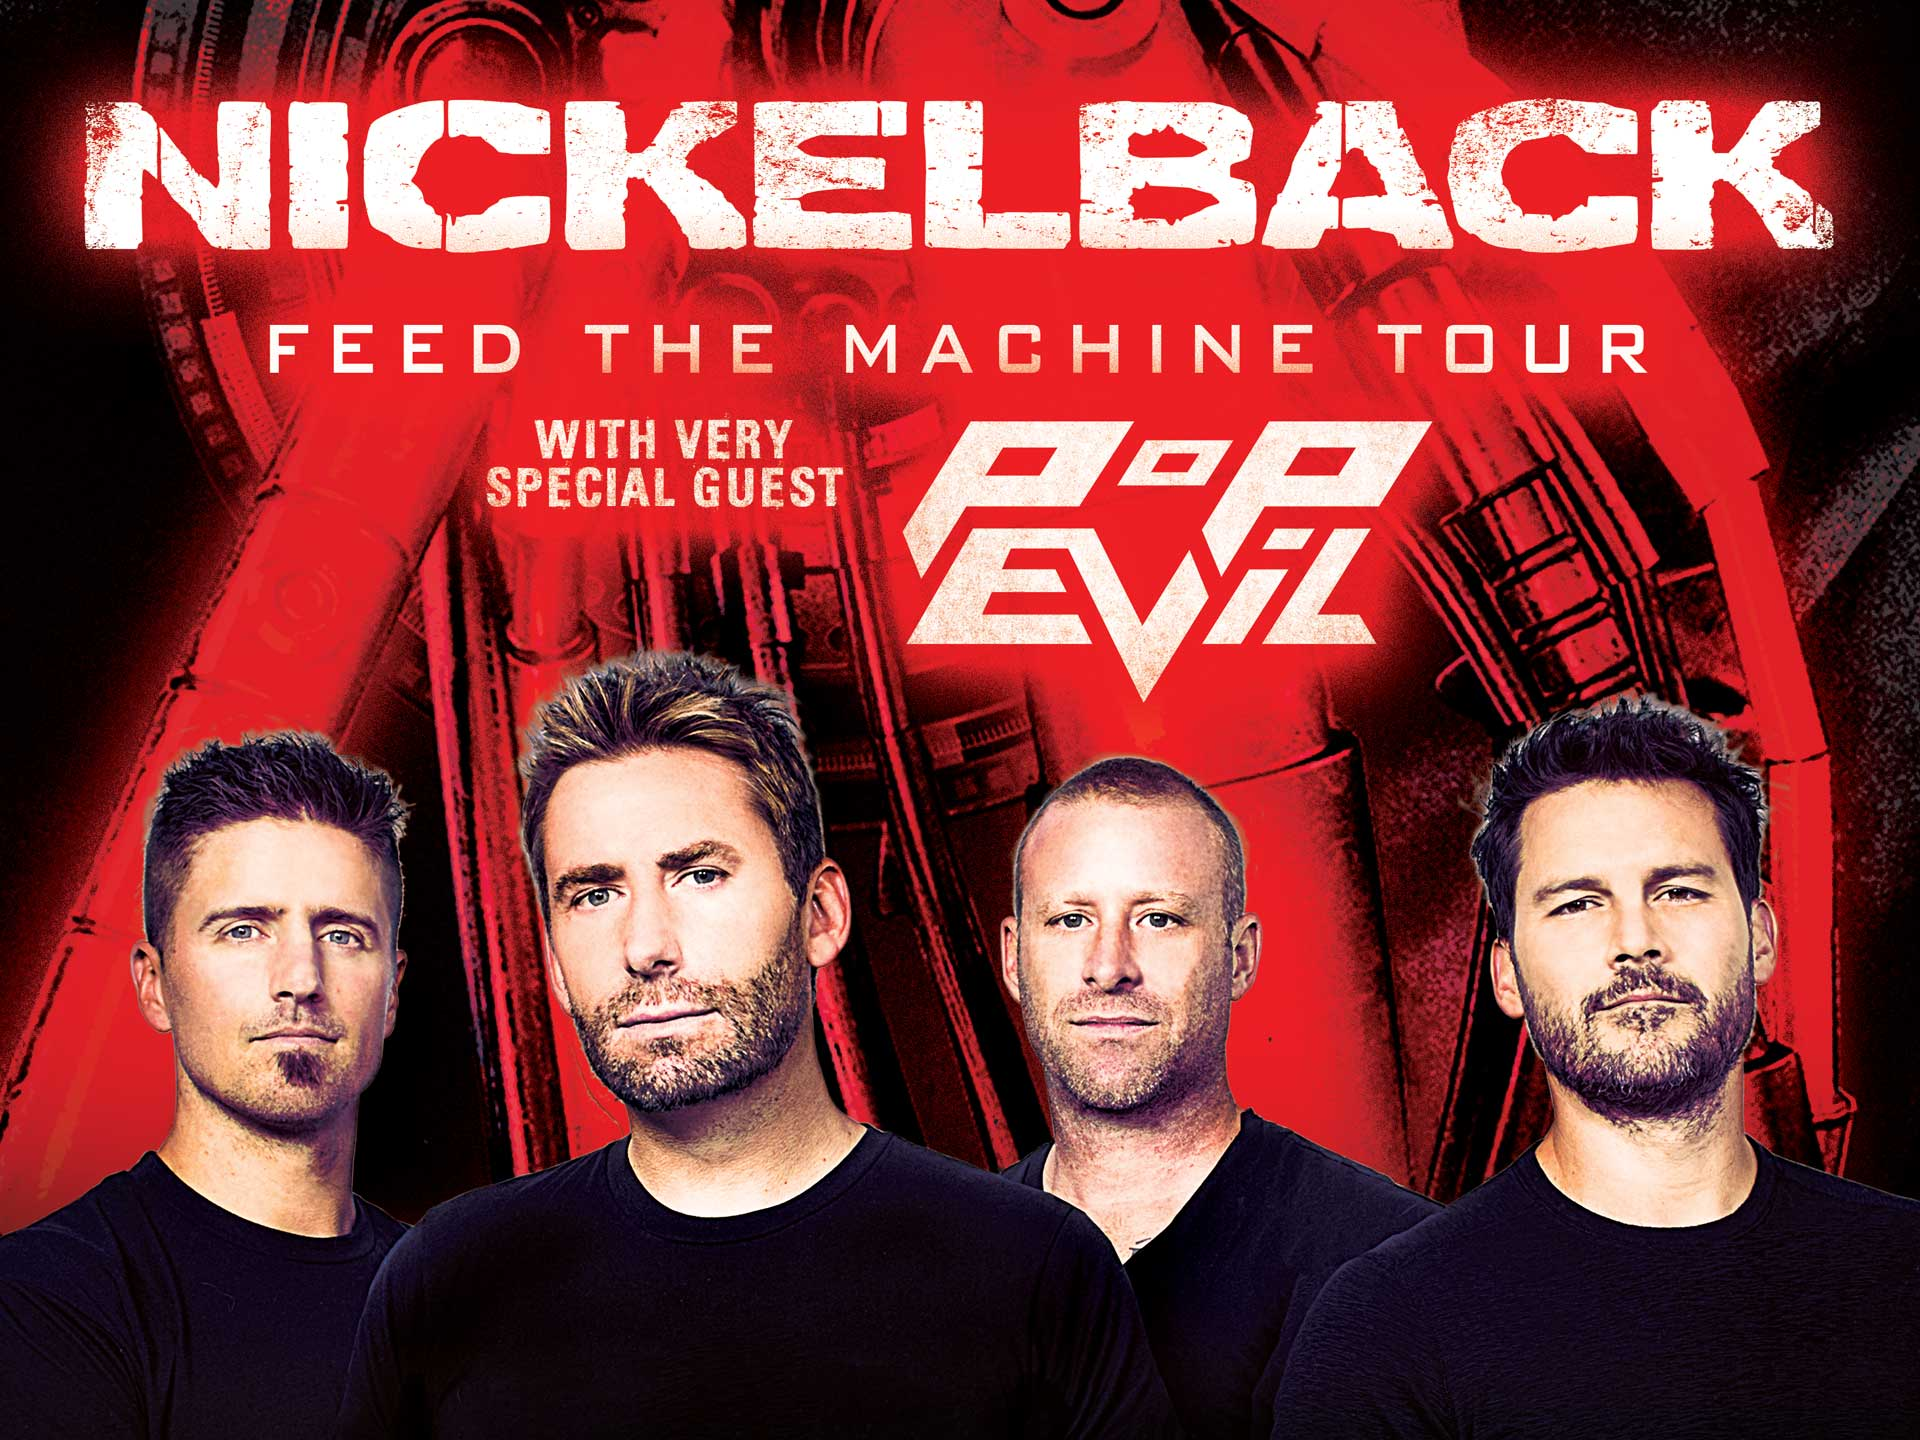 Image for NICKELBACK wsg POP EVIL - Friday, July 20, 2018 (OUTDOORS)